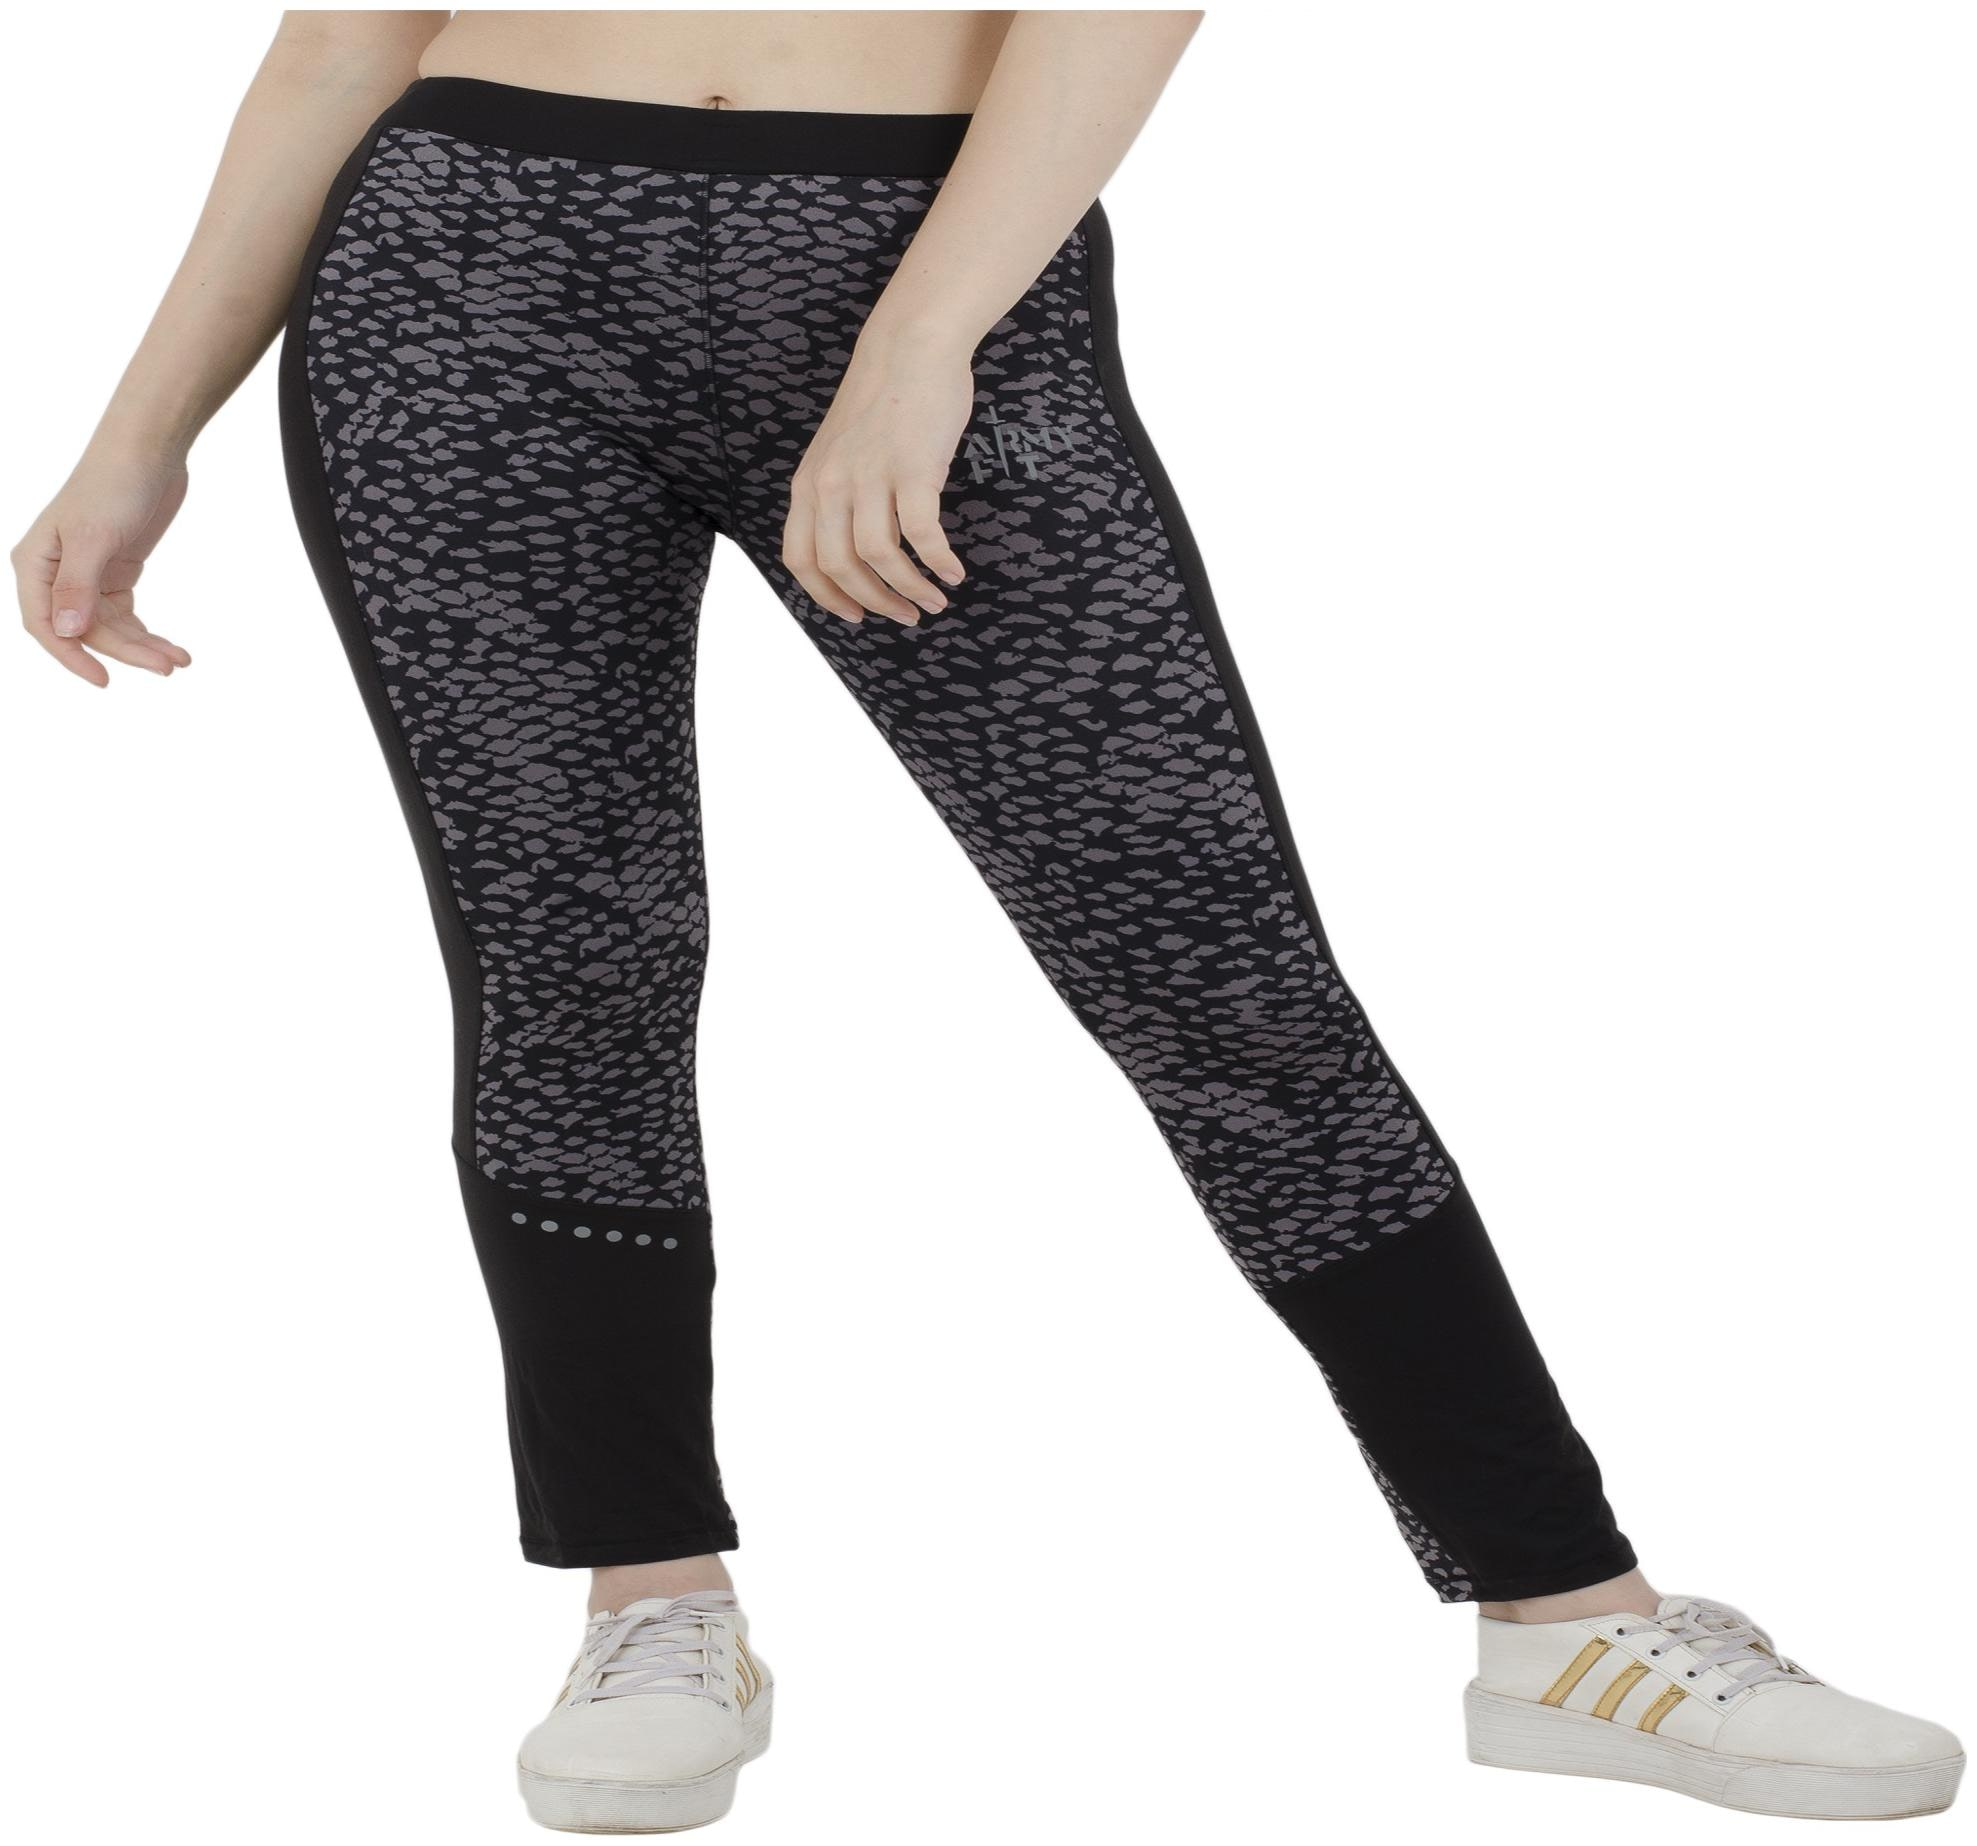 https://assetscdn1.paytm.com/images/catalog/product/A/AP/APPAARMY-FIT-LAAARA850136E6EF333/1562942028025_0..jpg